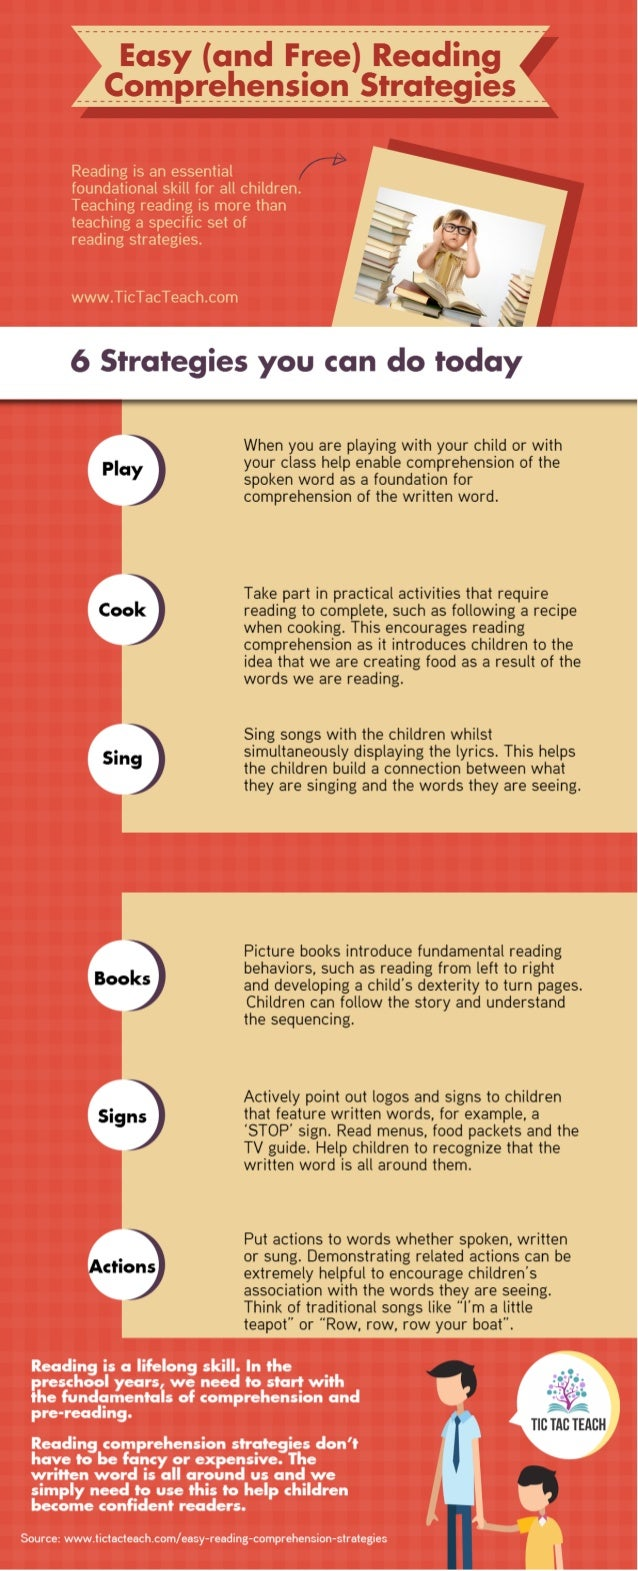 7 Easy Reading Comprehension Strategies You Can Use With Your Child For Free